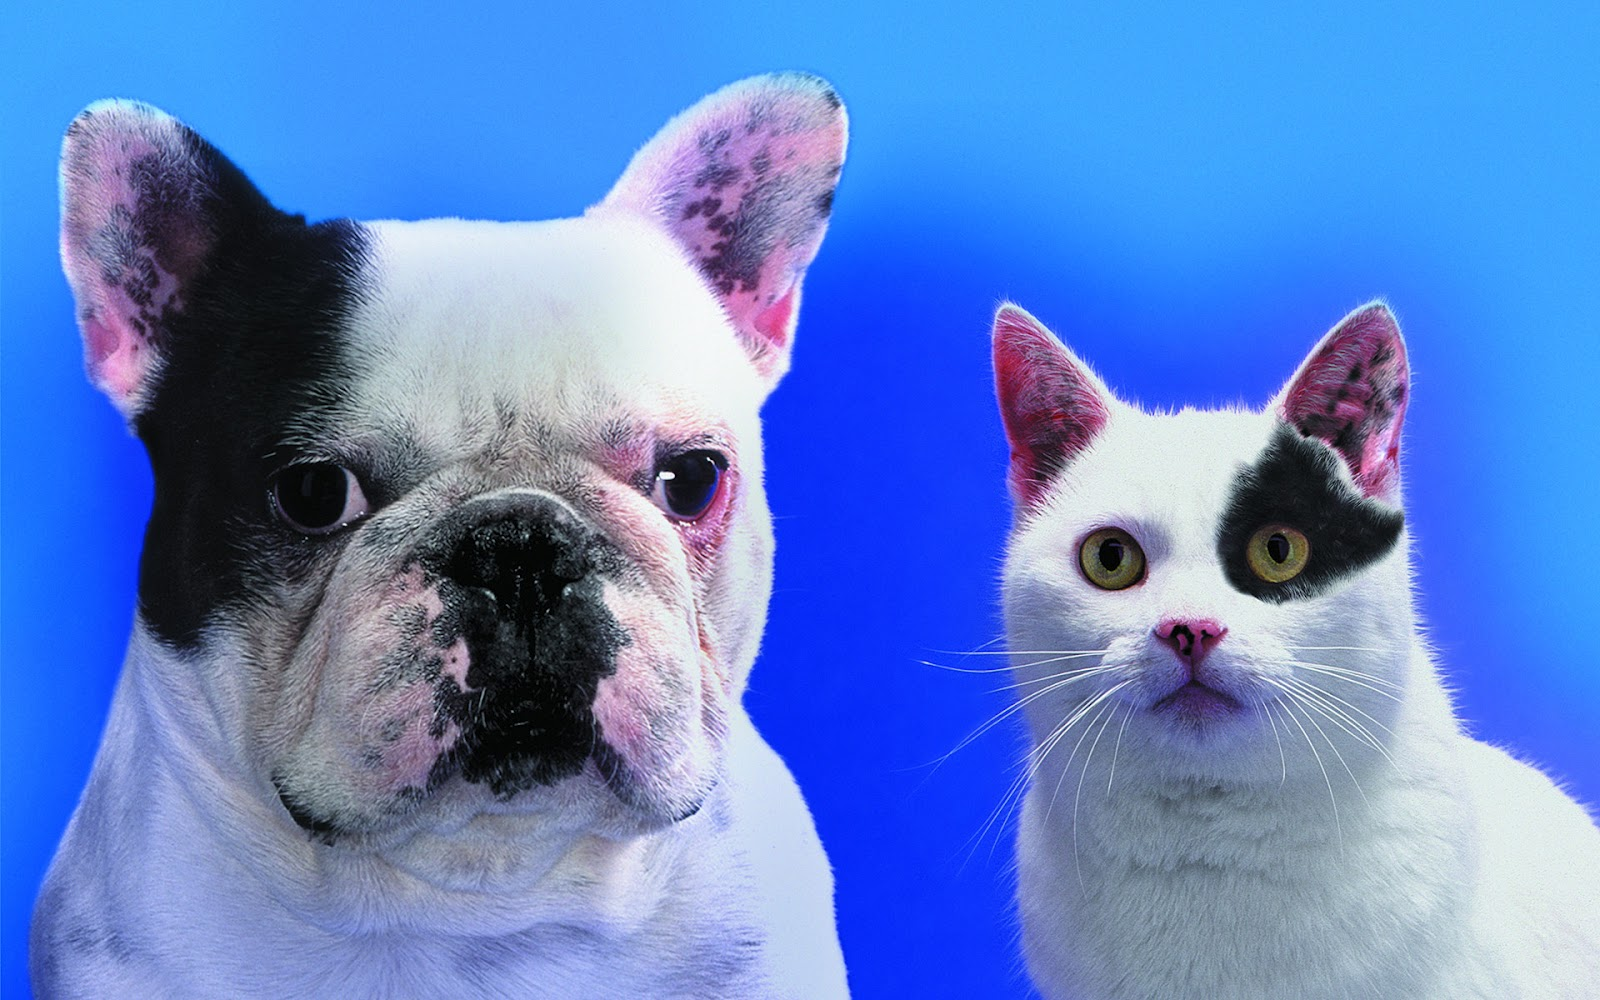 High Resolution Wallpaper: Funny Cats & Dogs Wallpapers